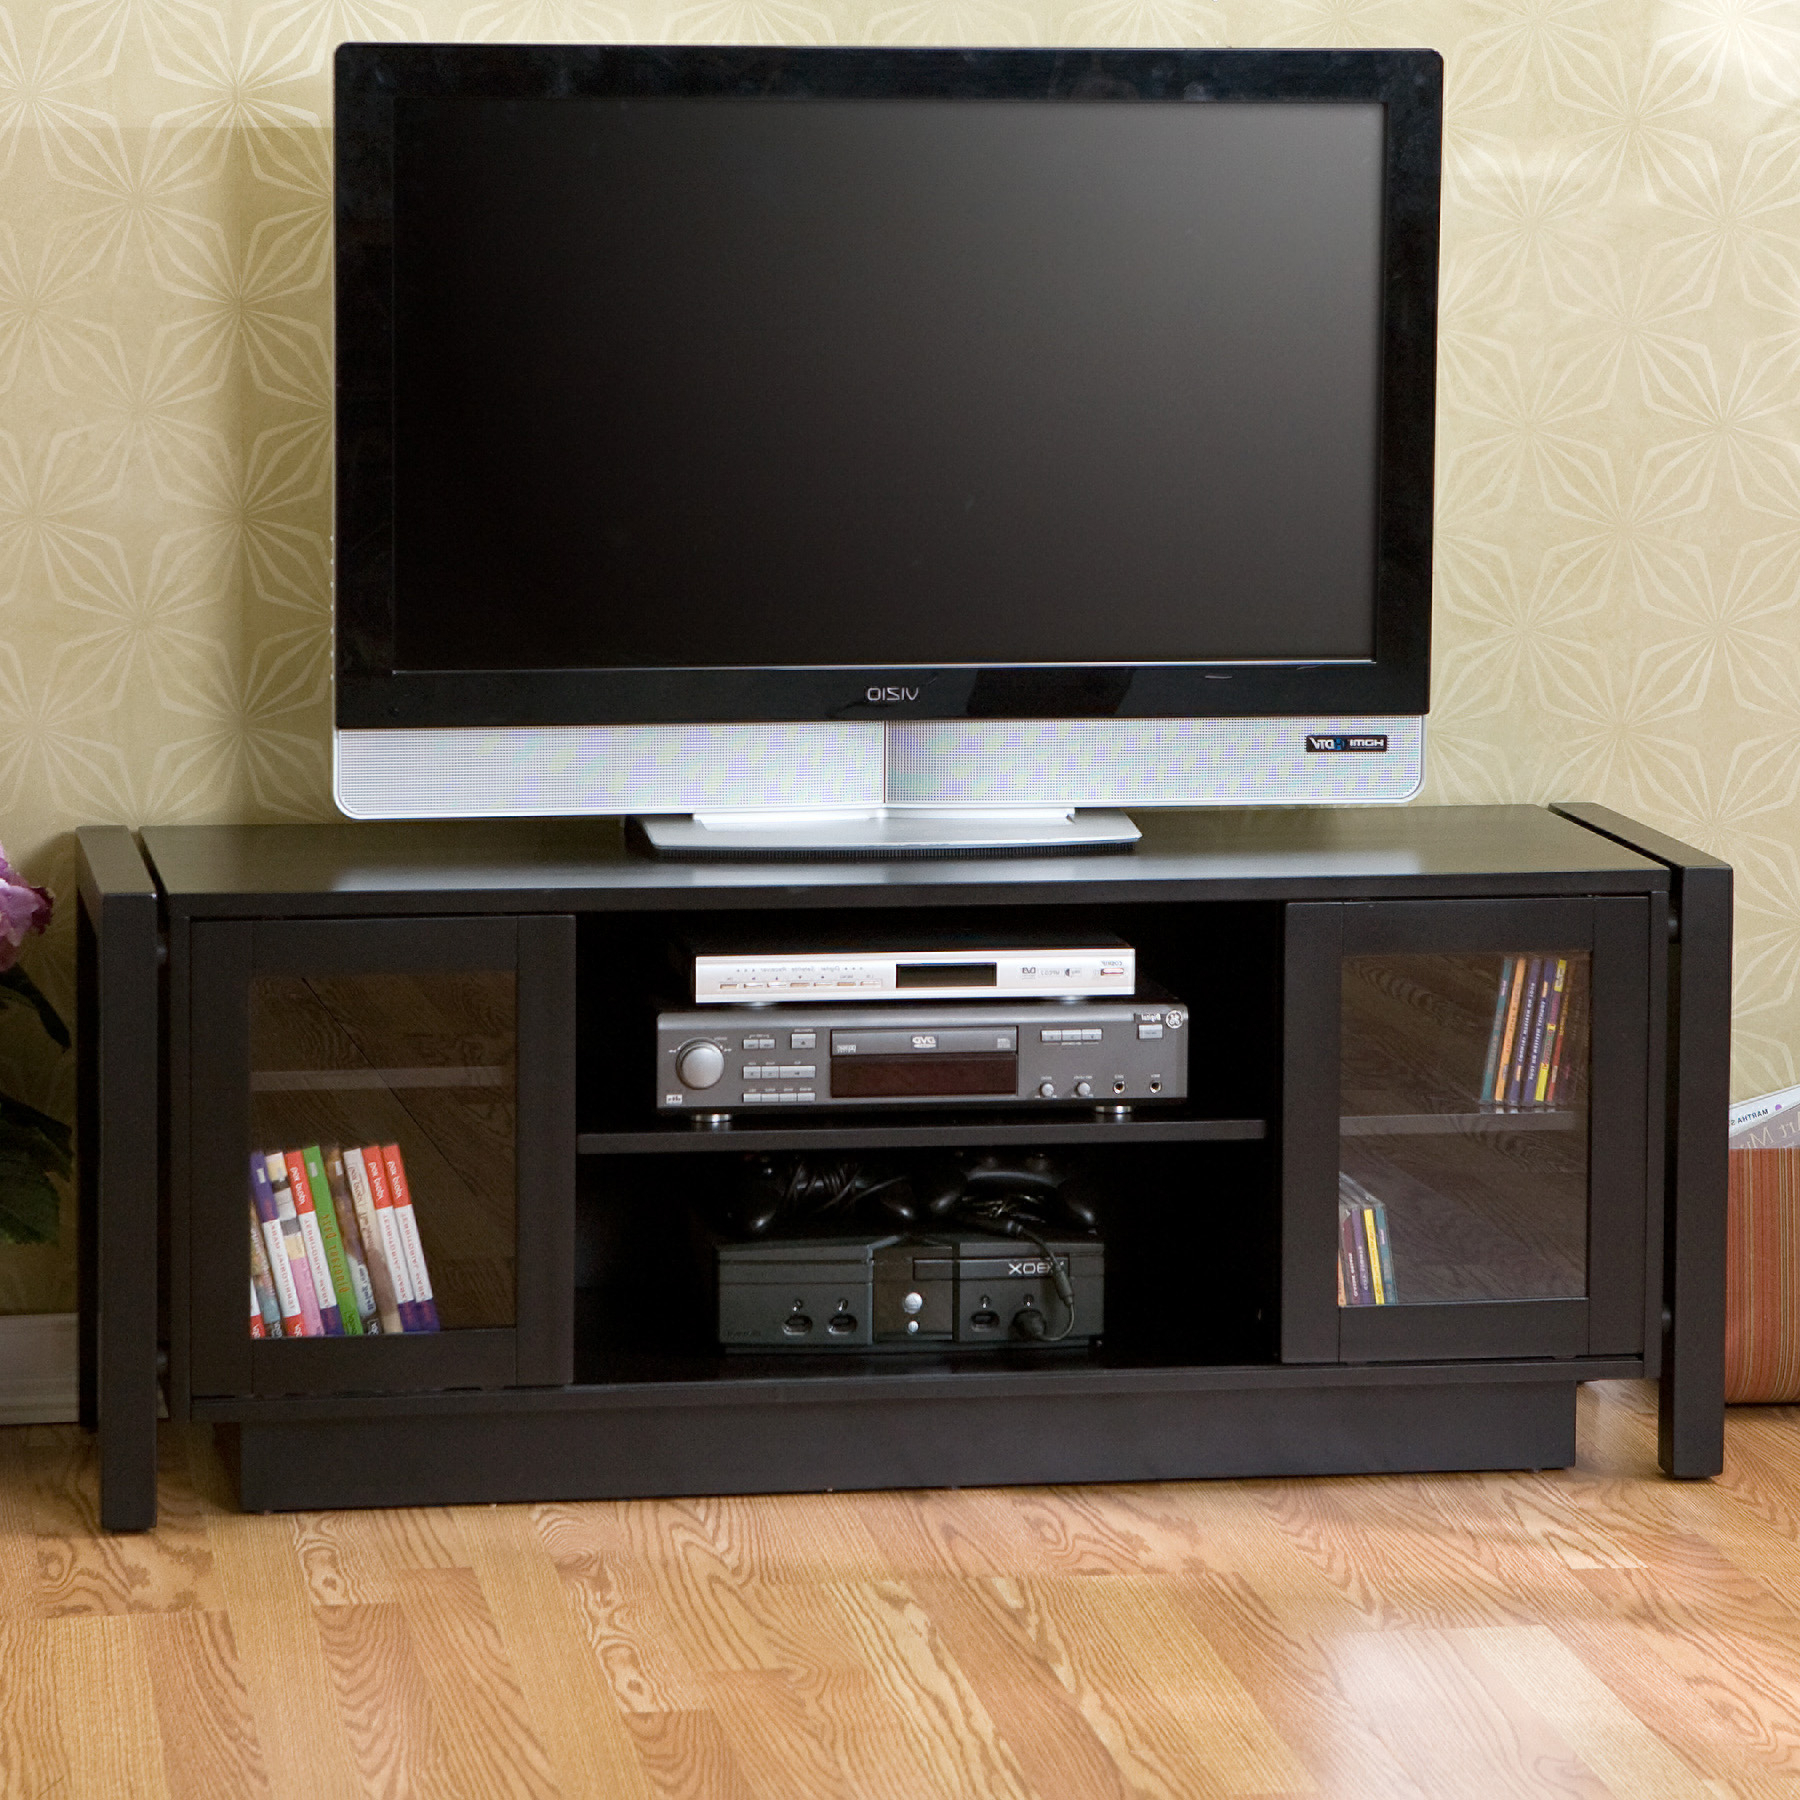 Most Popular Cool Black Tv Cabinets With Glass Doors And Dvd Player Shelf For Inside Glass Tv Cabinets With Doors (View 12 of 20)